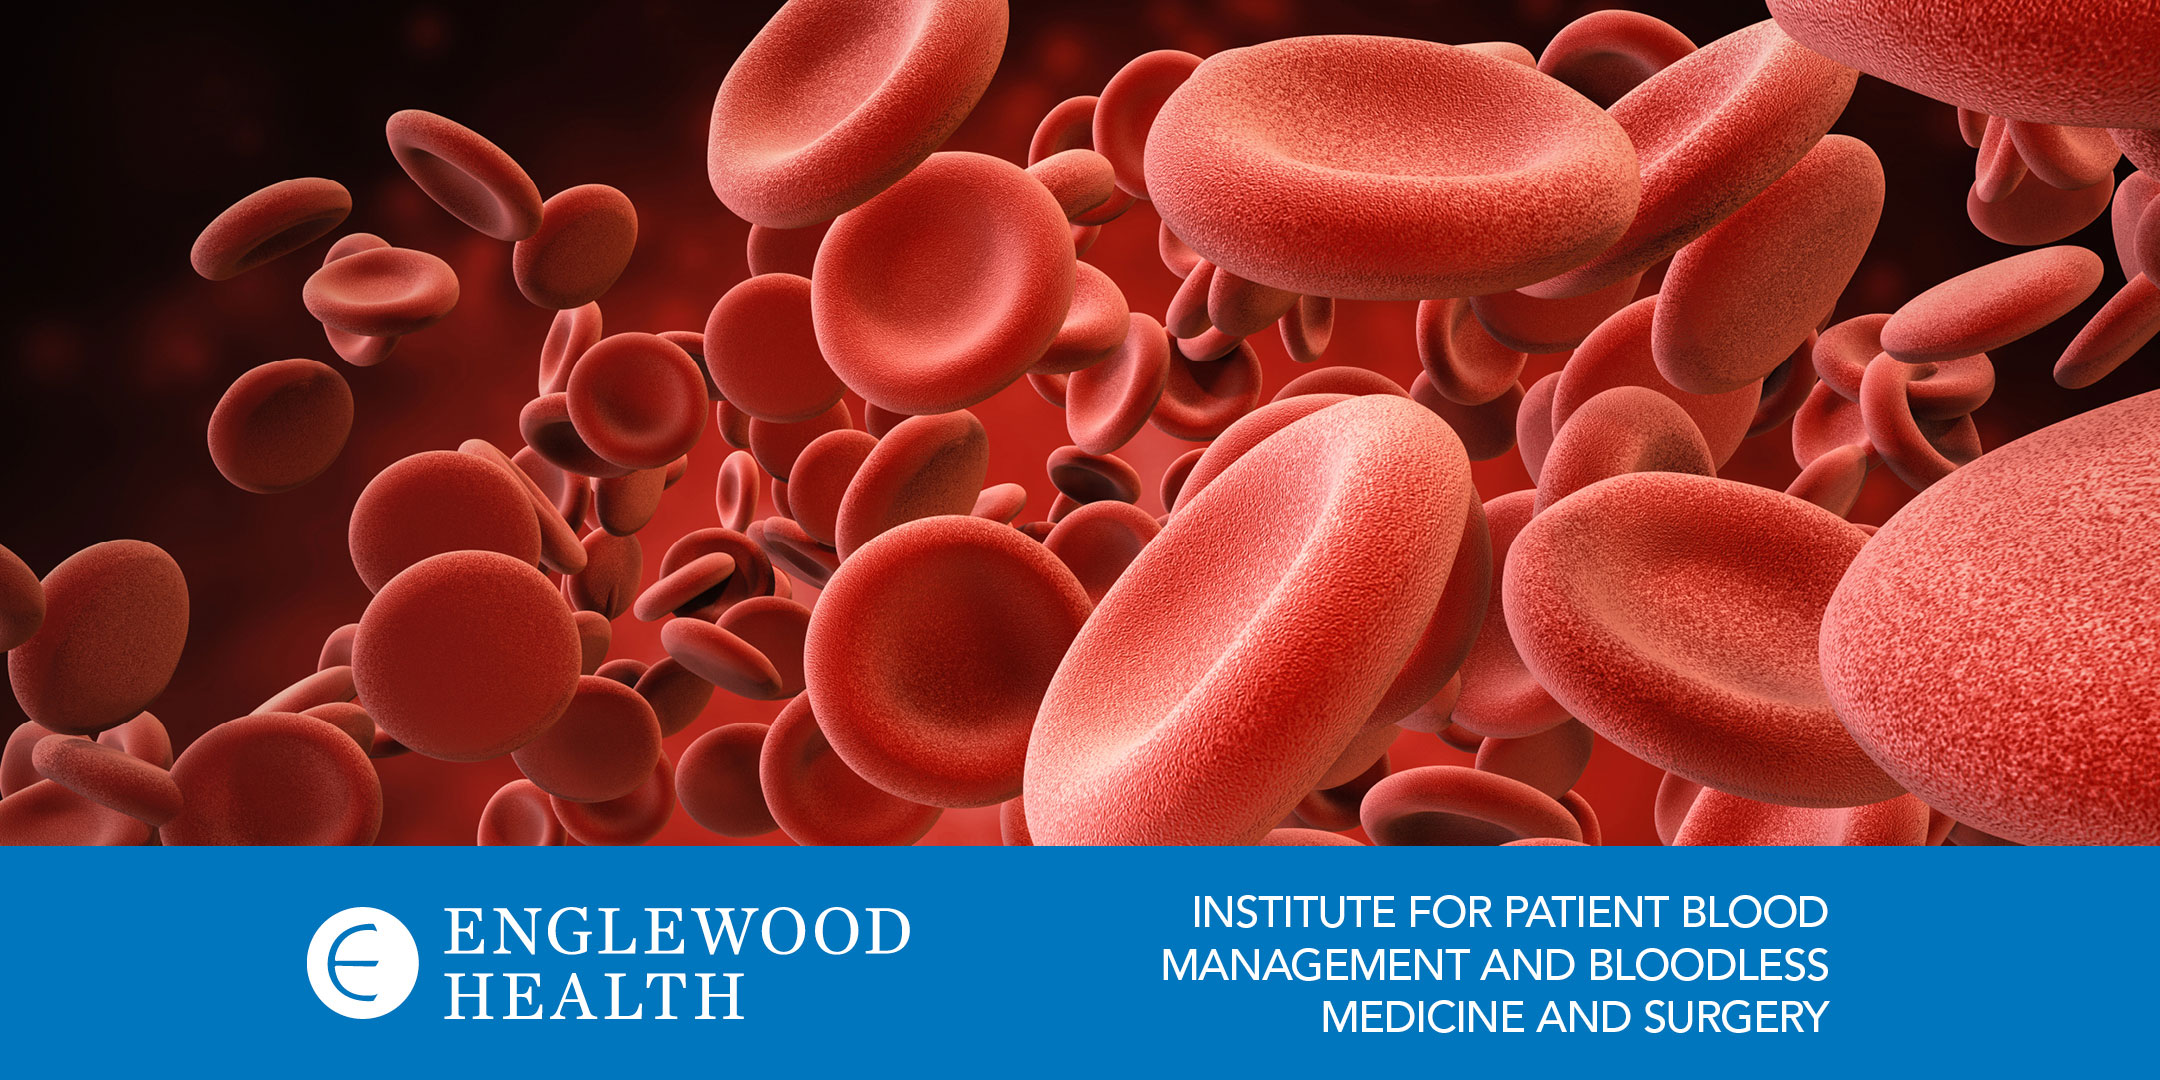 More info: The Bright Future of Bloodless Medicine at Englewood Health (Virtual Seminar)